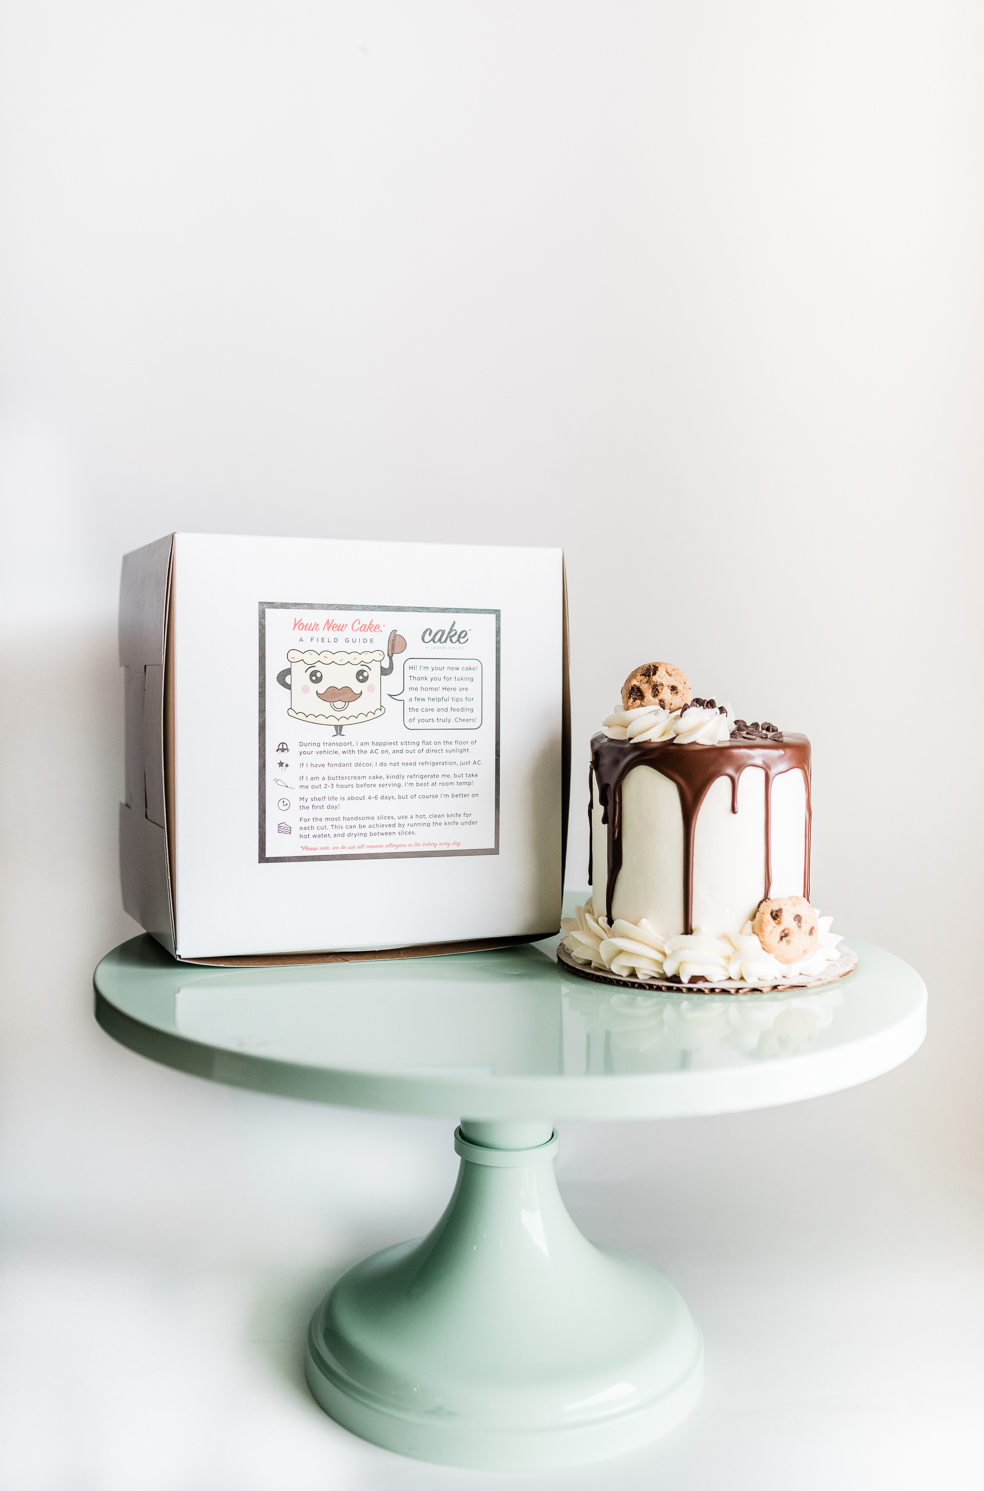 Baltimore-Maryland-Branding-Photographer-Business-Mentor-Cake by Jason Hisley-Photos by-Breanna Kuhlmann-#BKLP-5.jpg